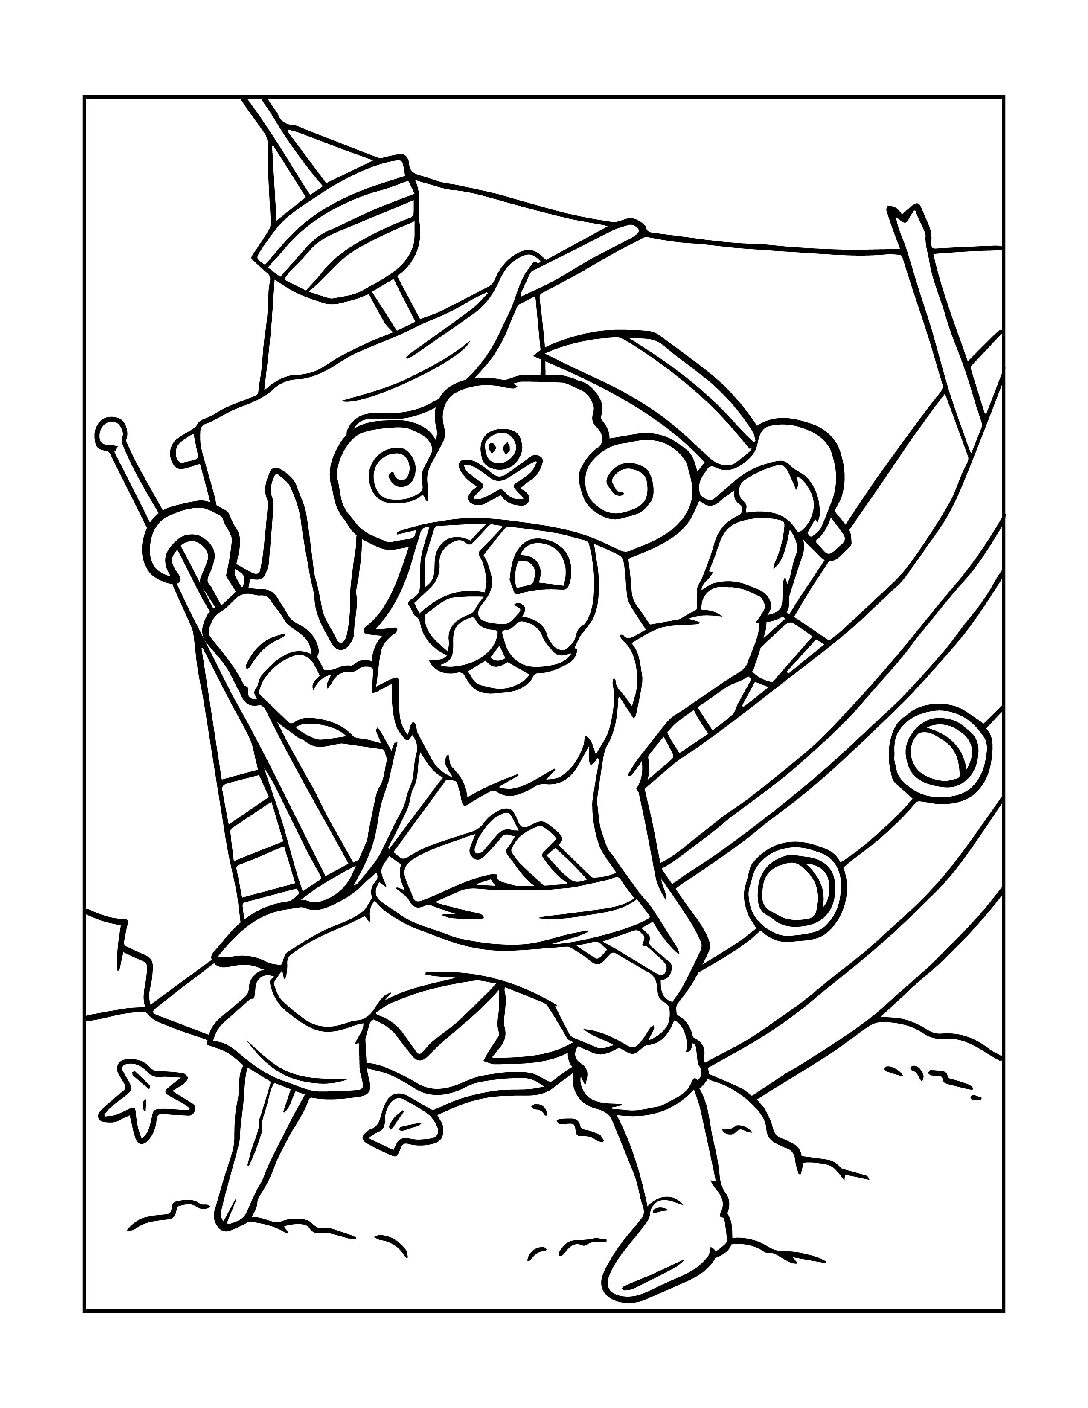 Coloring-Pages-Pirates-and-Knights-for-Boys-7-01-pdf Free Printable Pirates &  Knights Colouring Pages